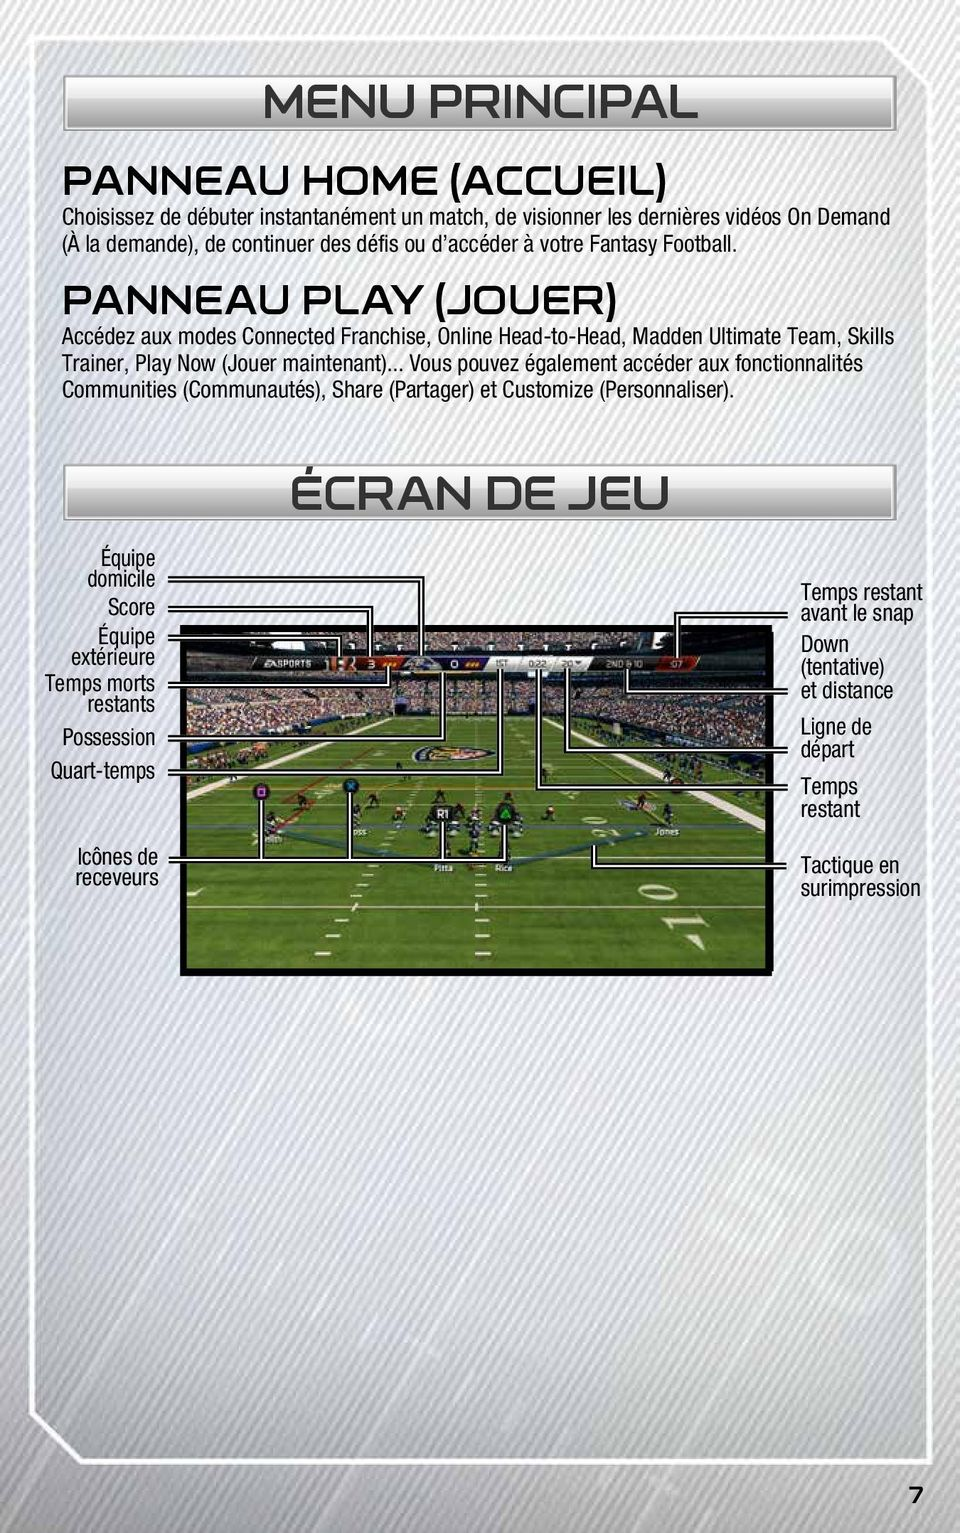 Panneau Play (Jouer) Accédez aux modes Connected Franchise, Online Head-to-Head, Madden Ultimate Team, Skills Trainer, Play Now (Jouer maintenant).